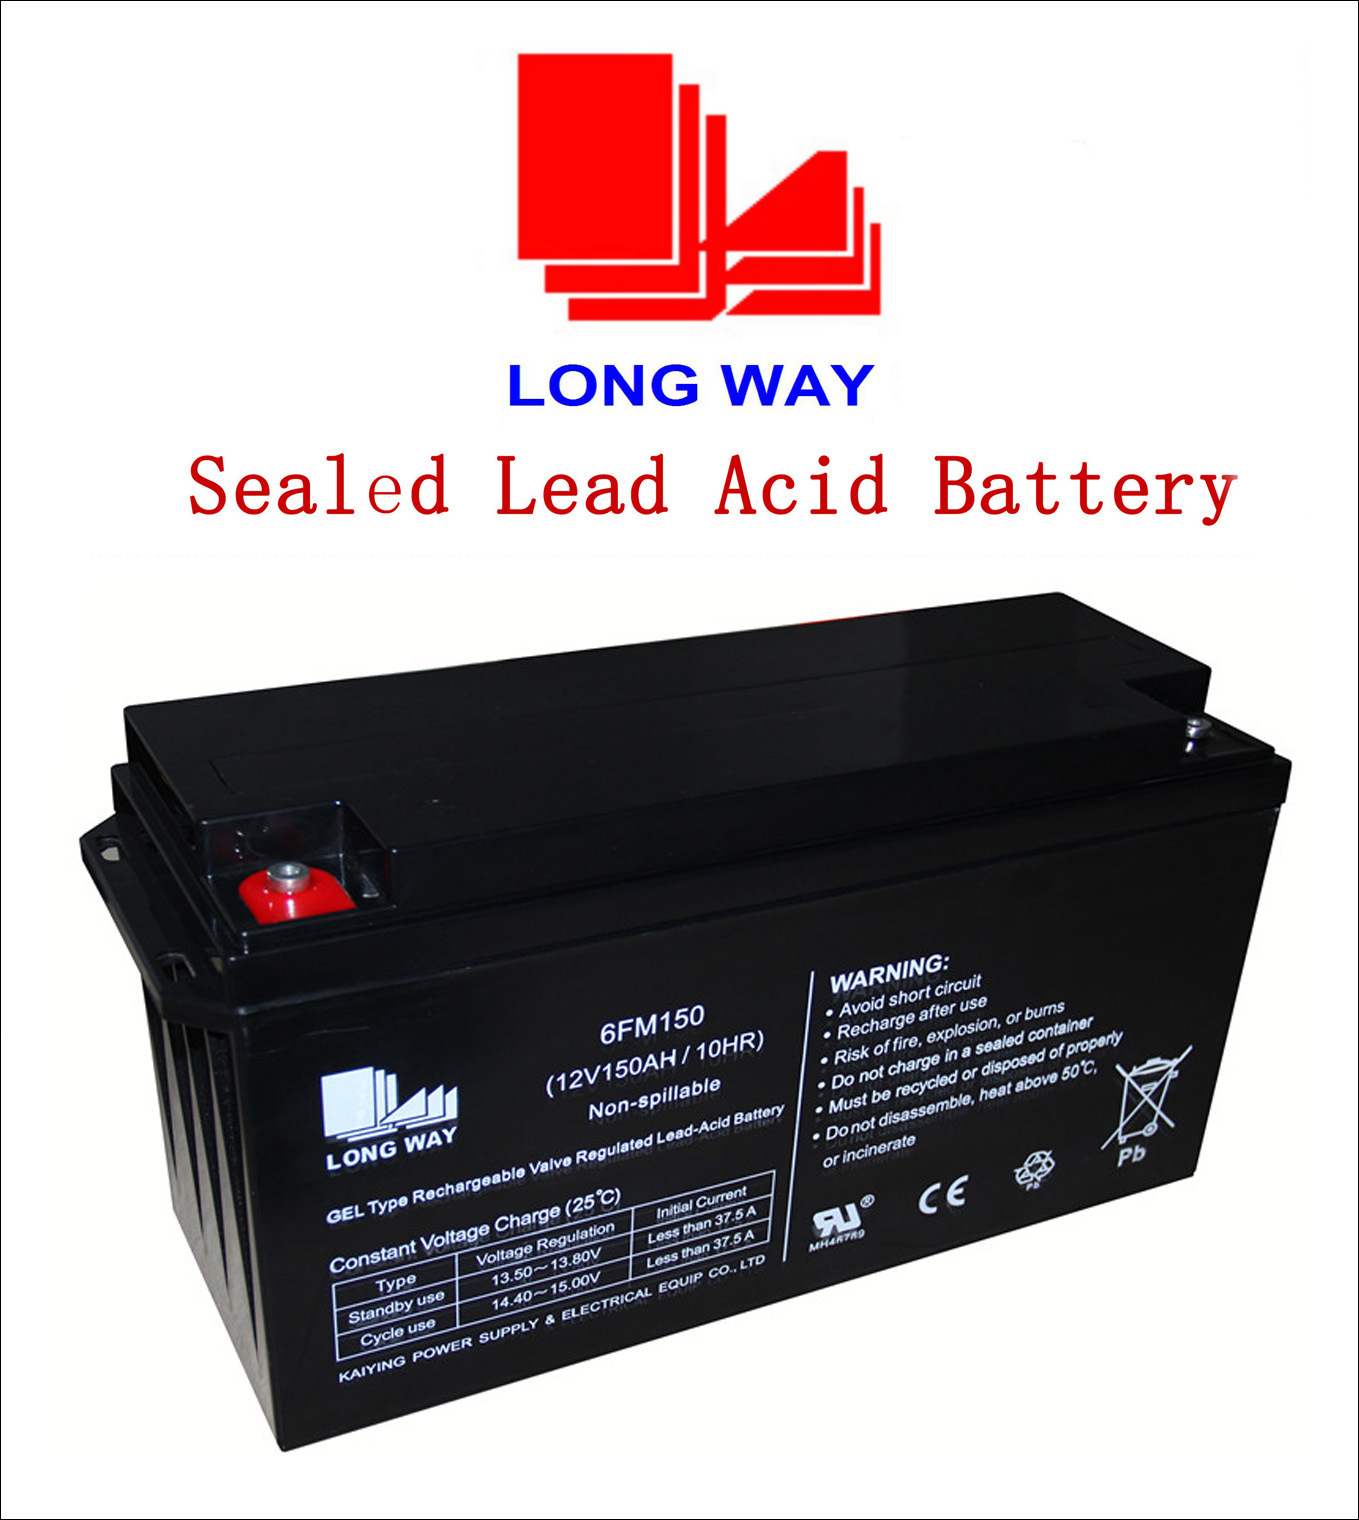 Lead Acid Battery >> Hot Item 12v150ah Lead Acid Battery With Maintenance Free Used For Solar System